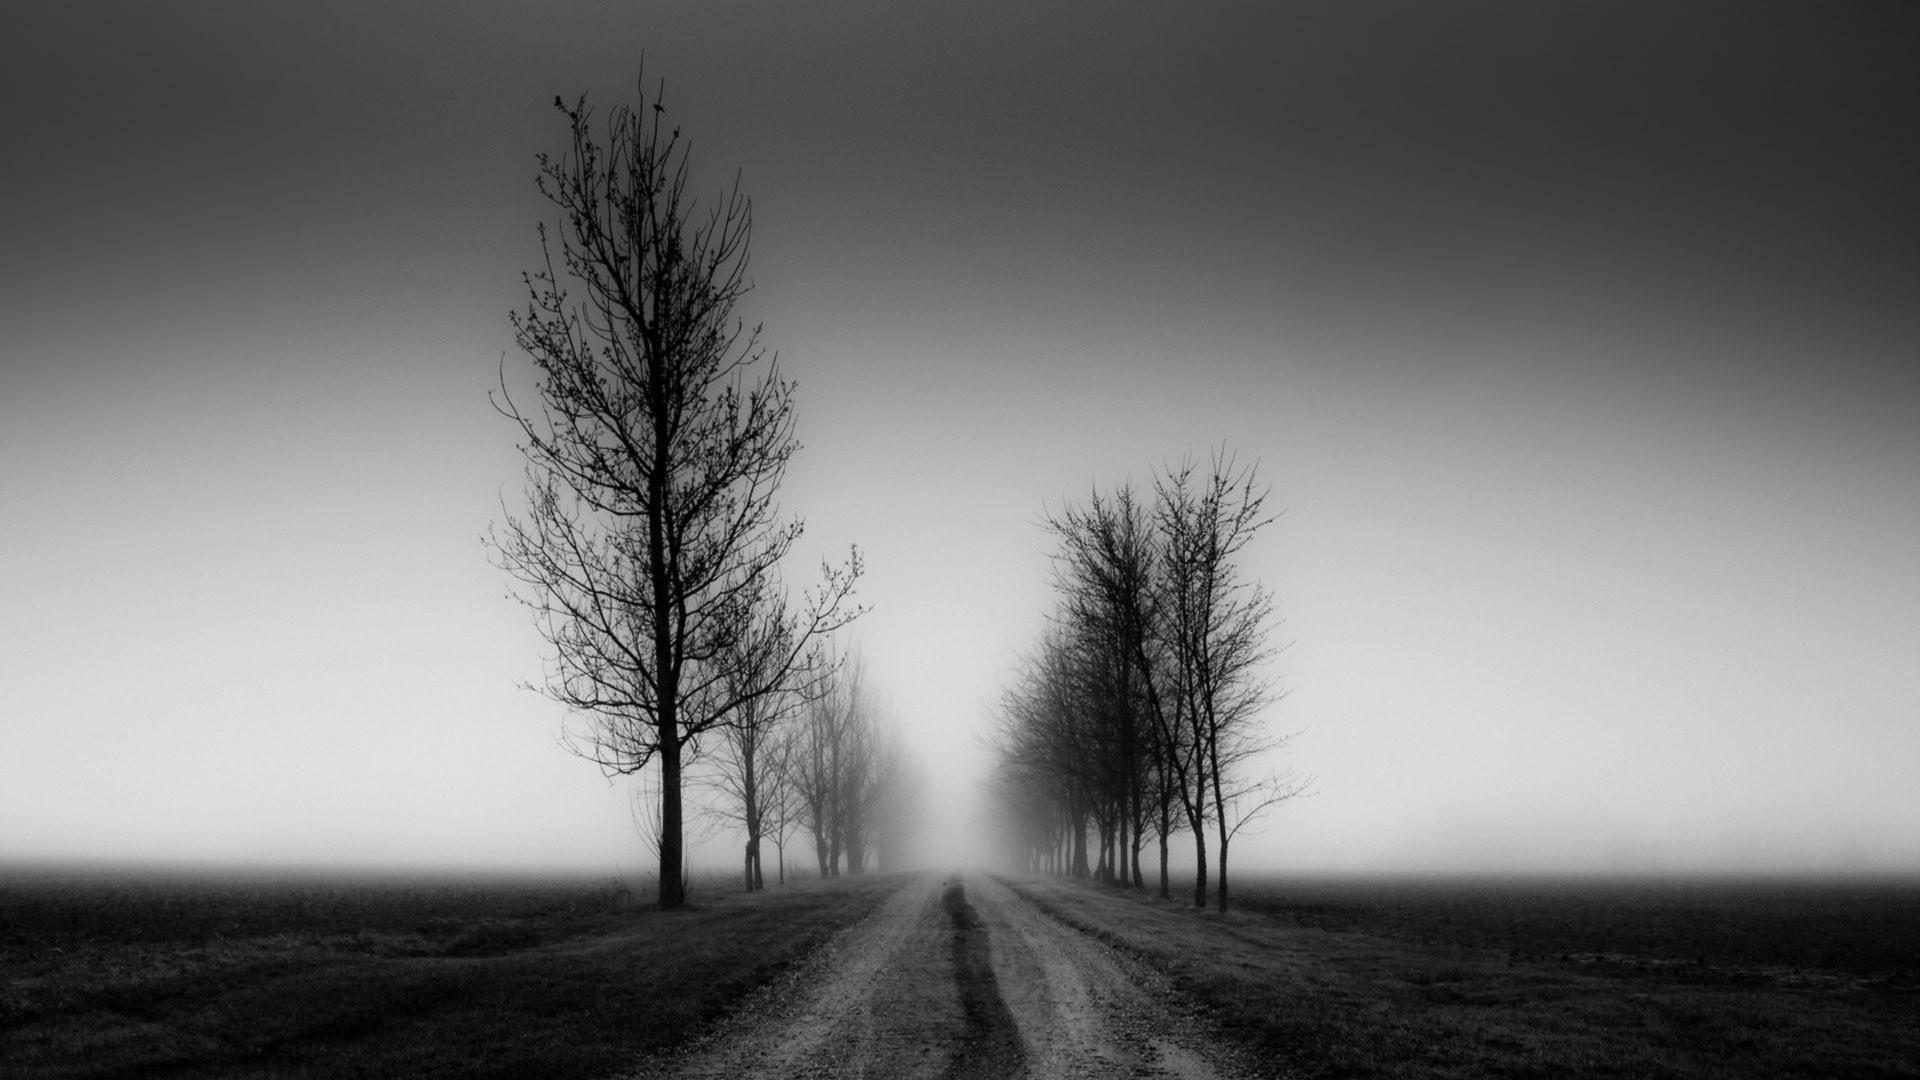 Black And White Photography Nature Wallpaper Widescreen 2 HD Wallpapers